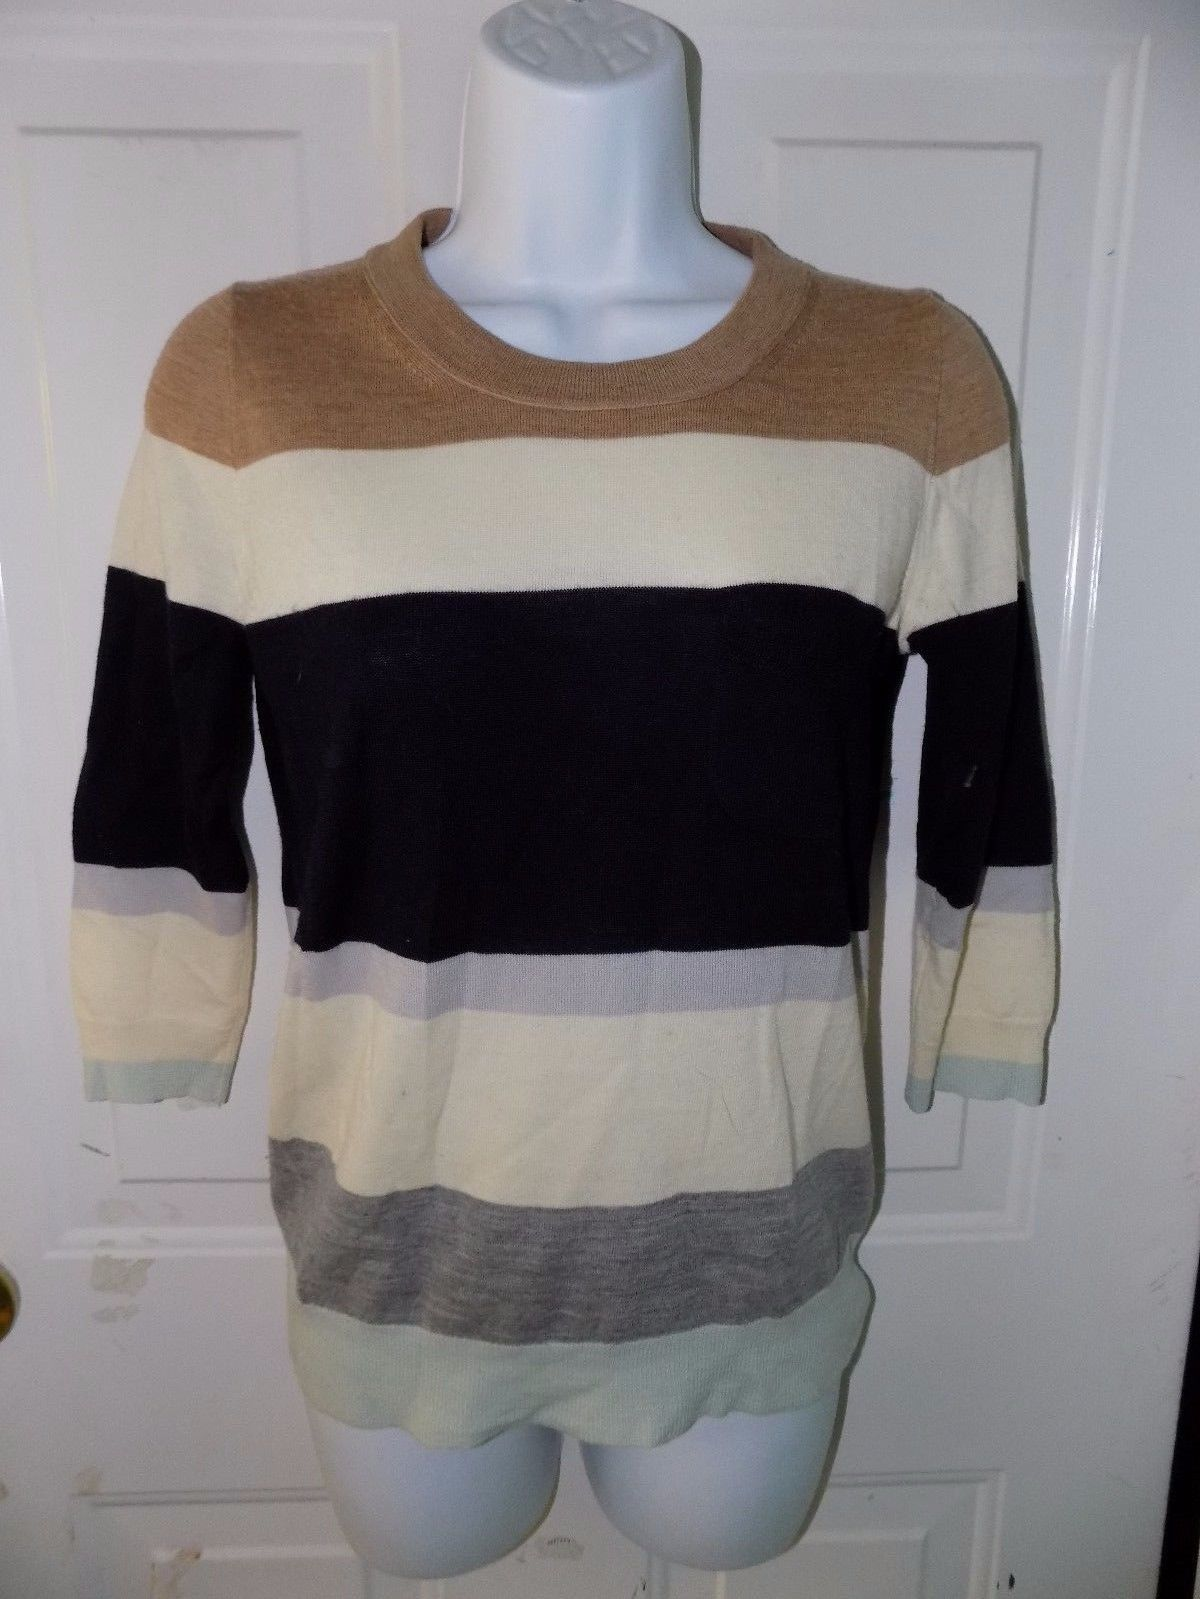 Primary image for J. CREW Striped Multi-Colored Long-Sleeve Sweater Size XS EUC